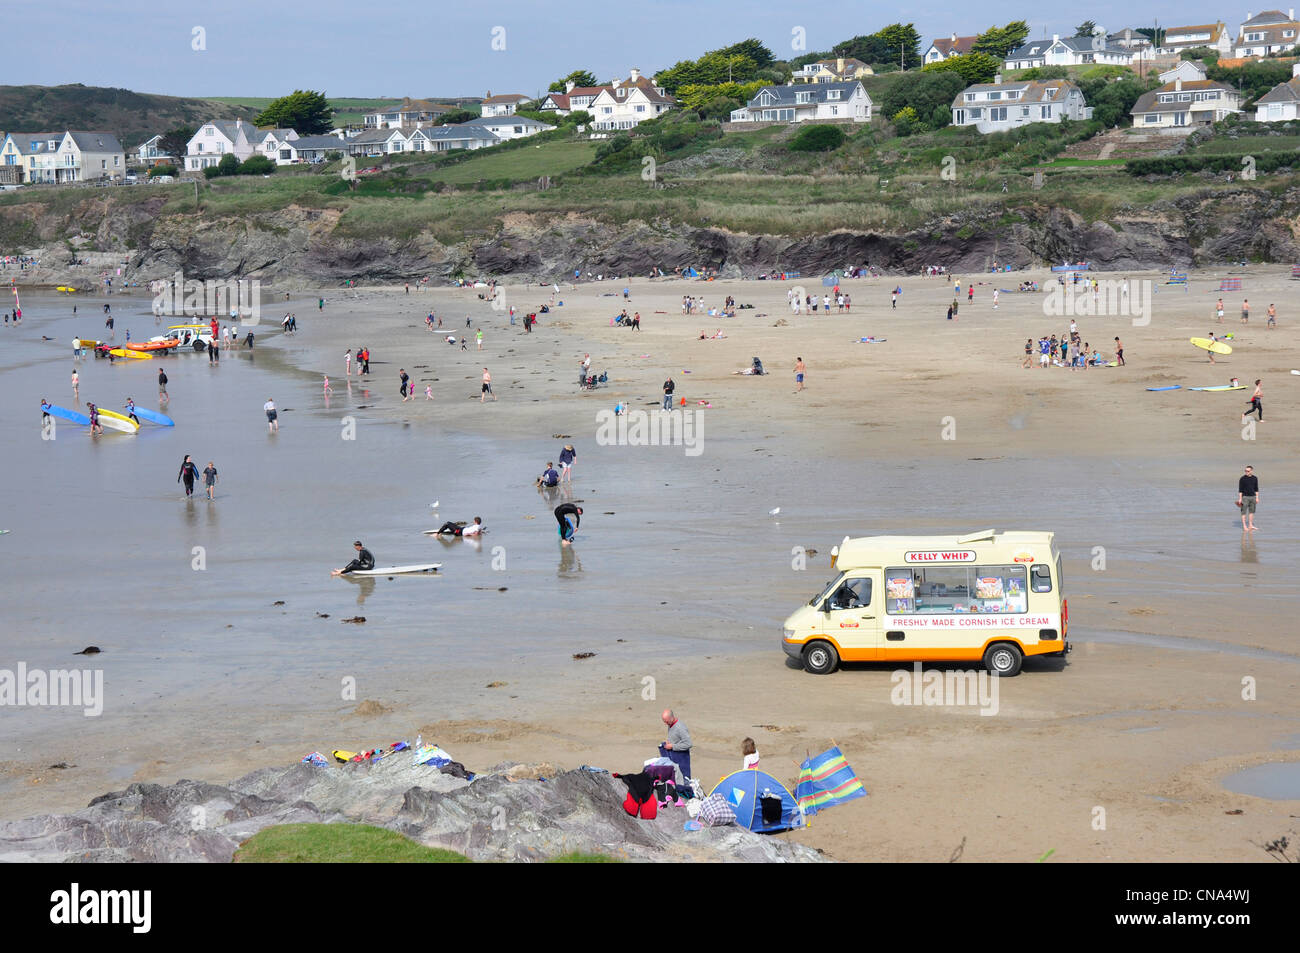 Cornwall - Hayle Bay - summer beach scene - slow day for ice cream sales - Stock Image